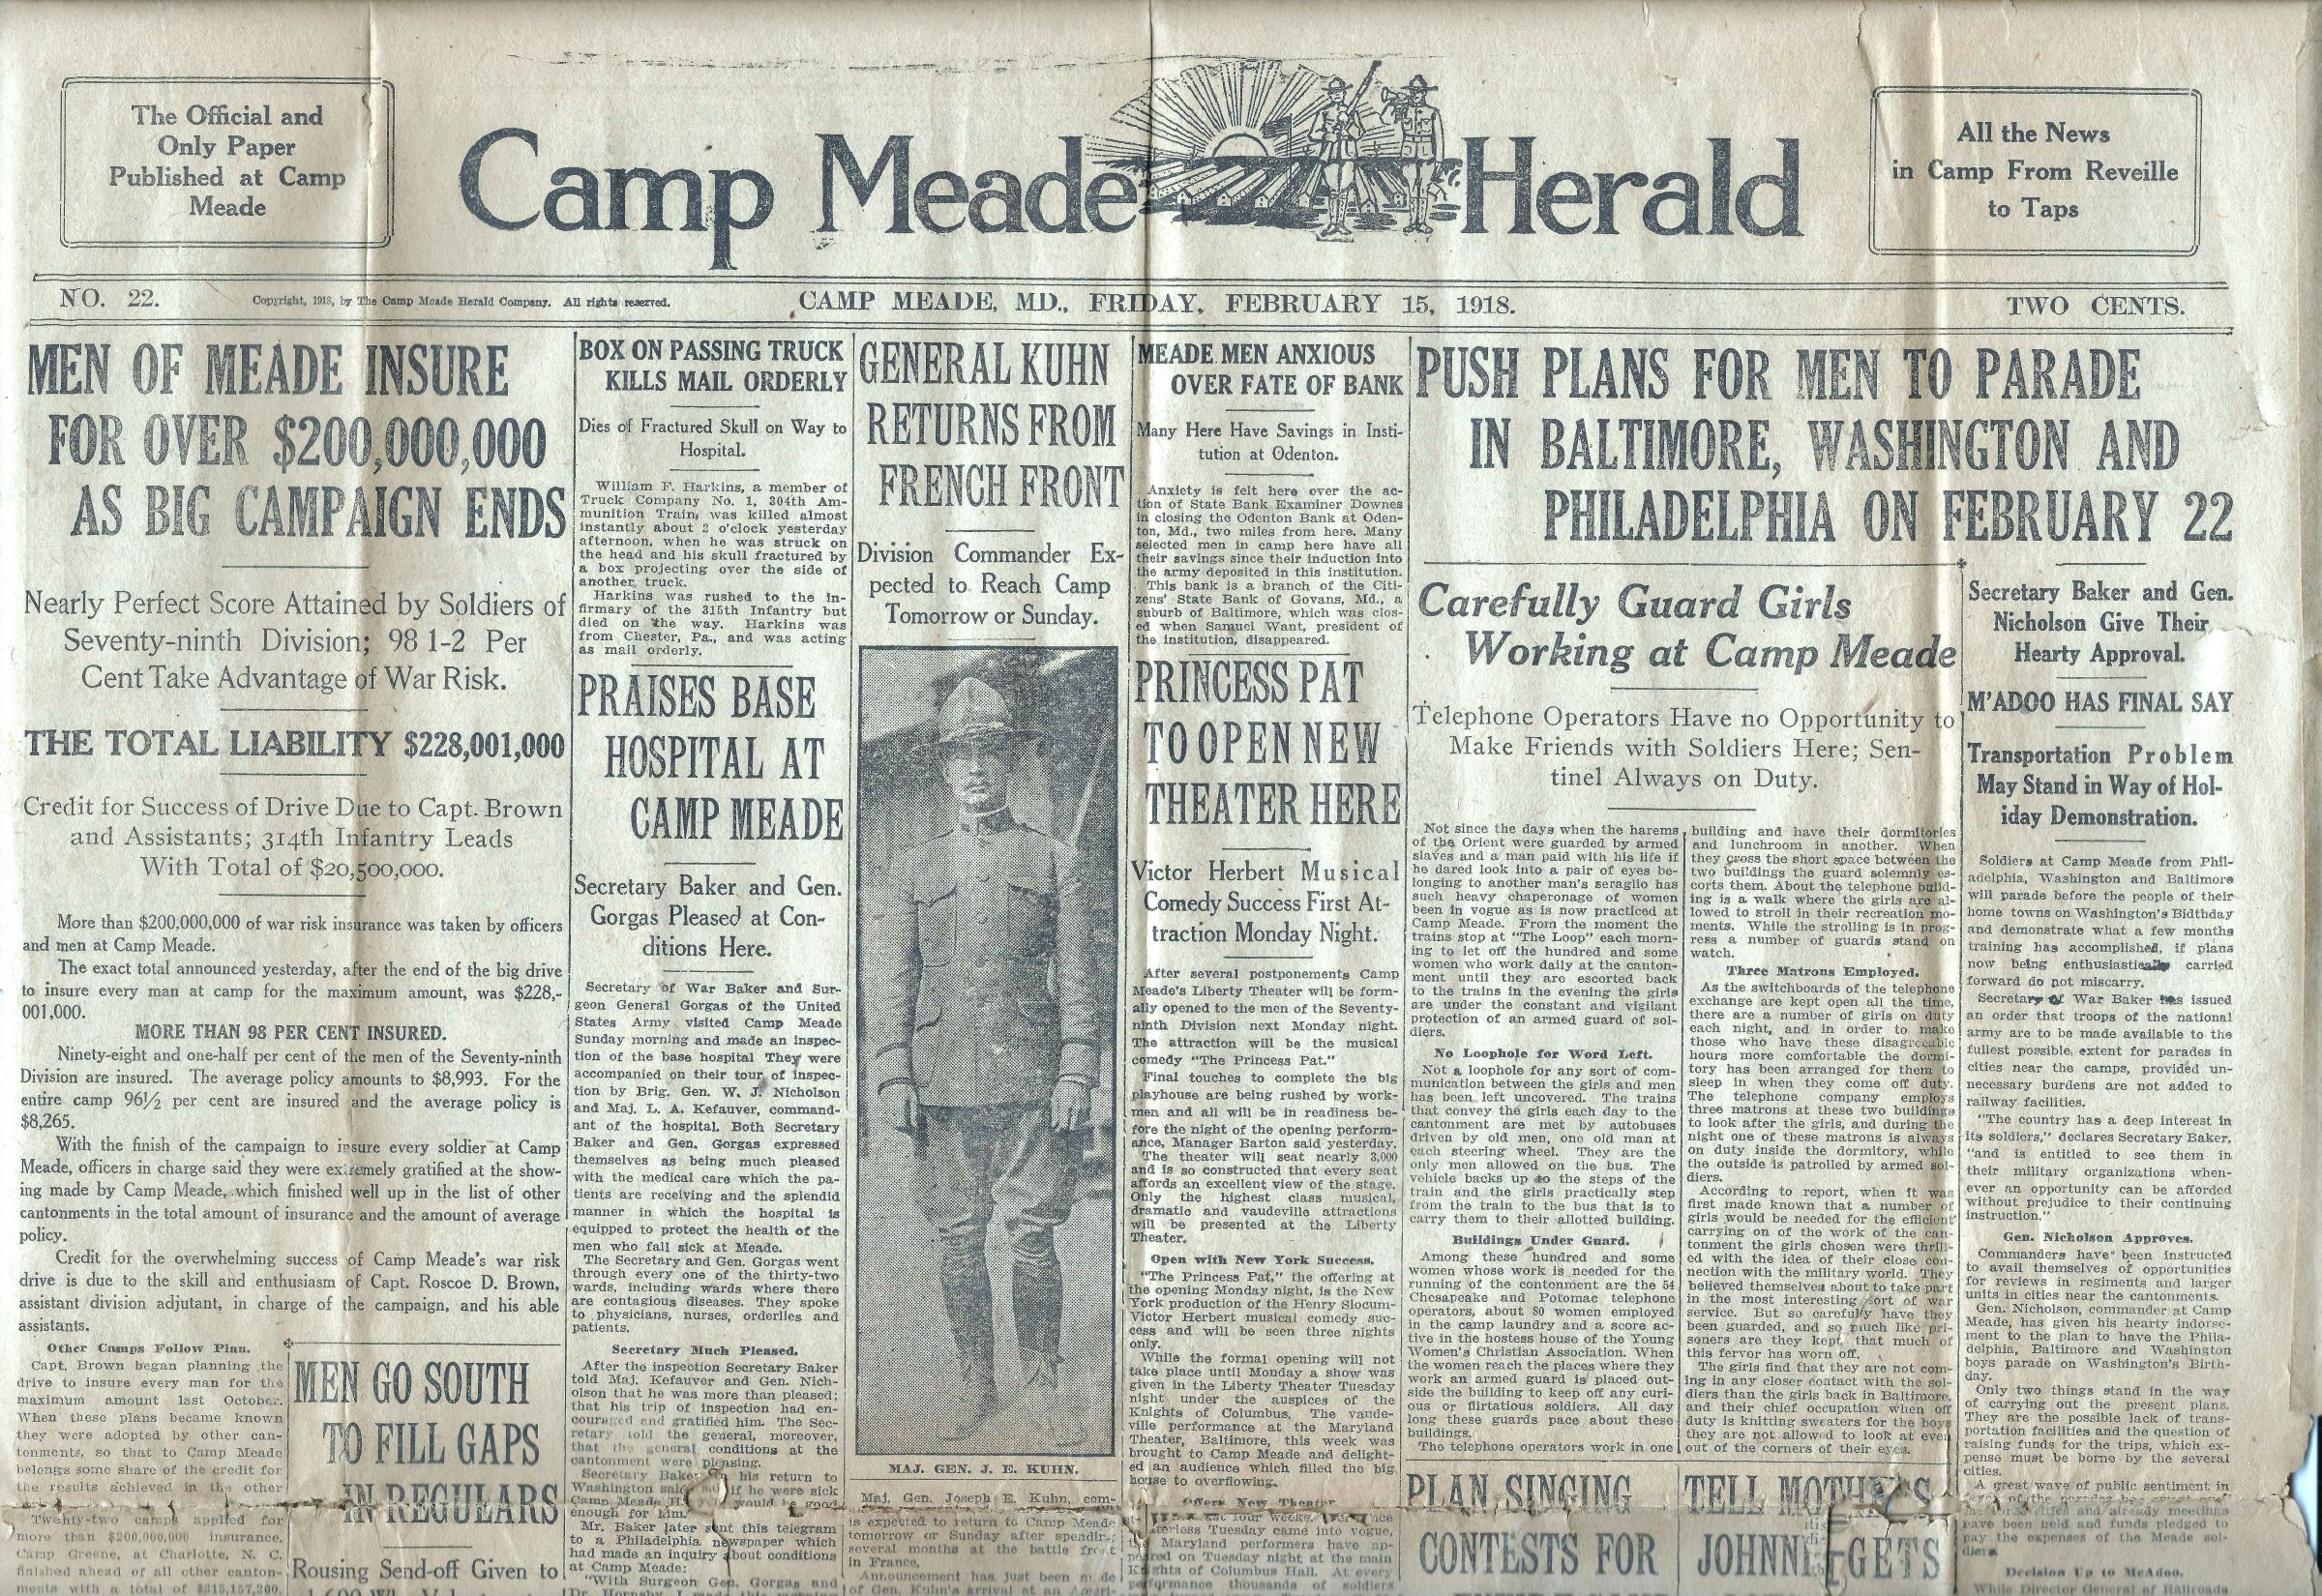 Camp Meade Herald newspaper - February 15 1918 - Page 1 Top